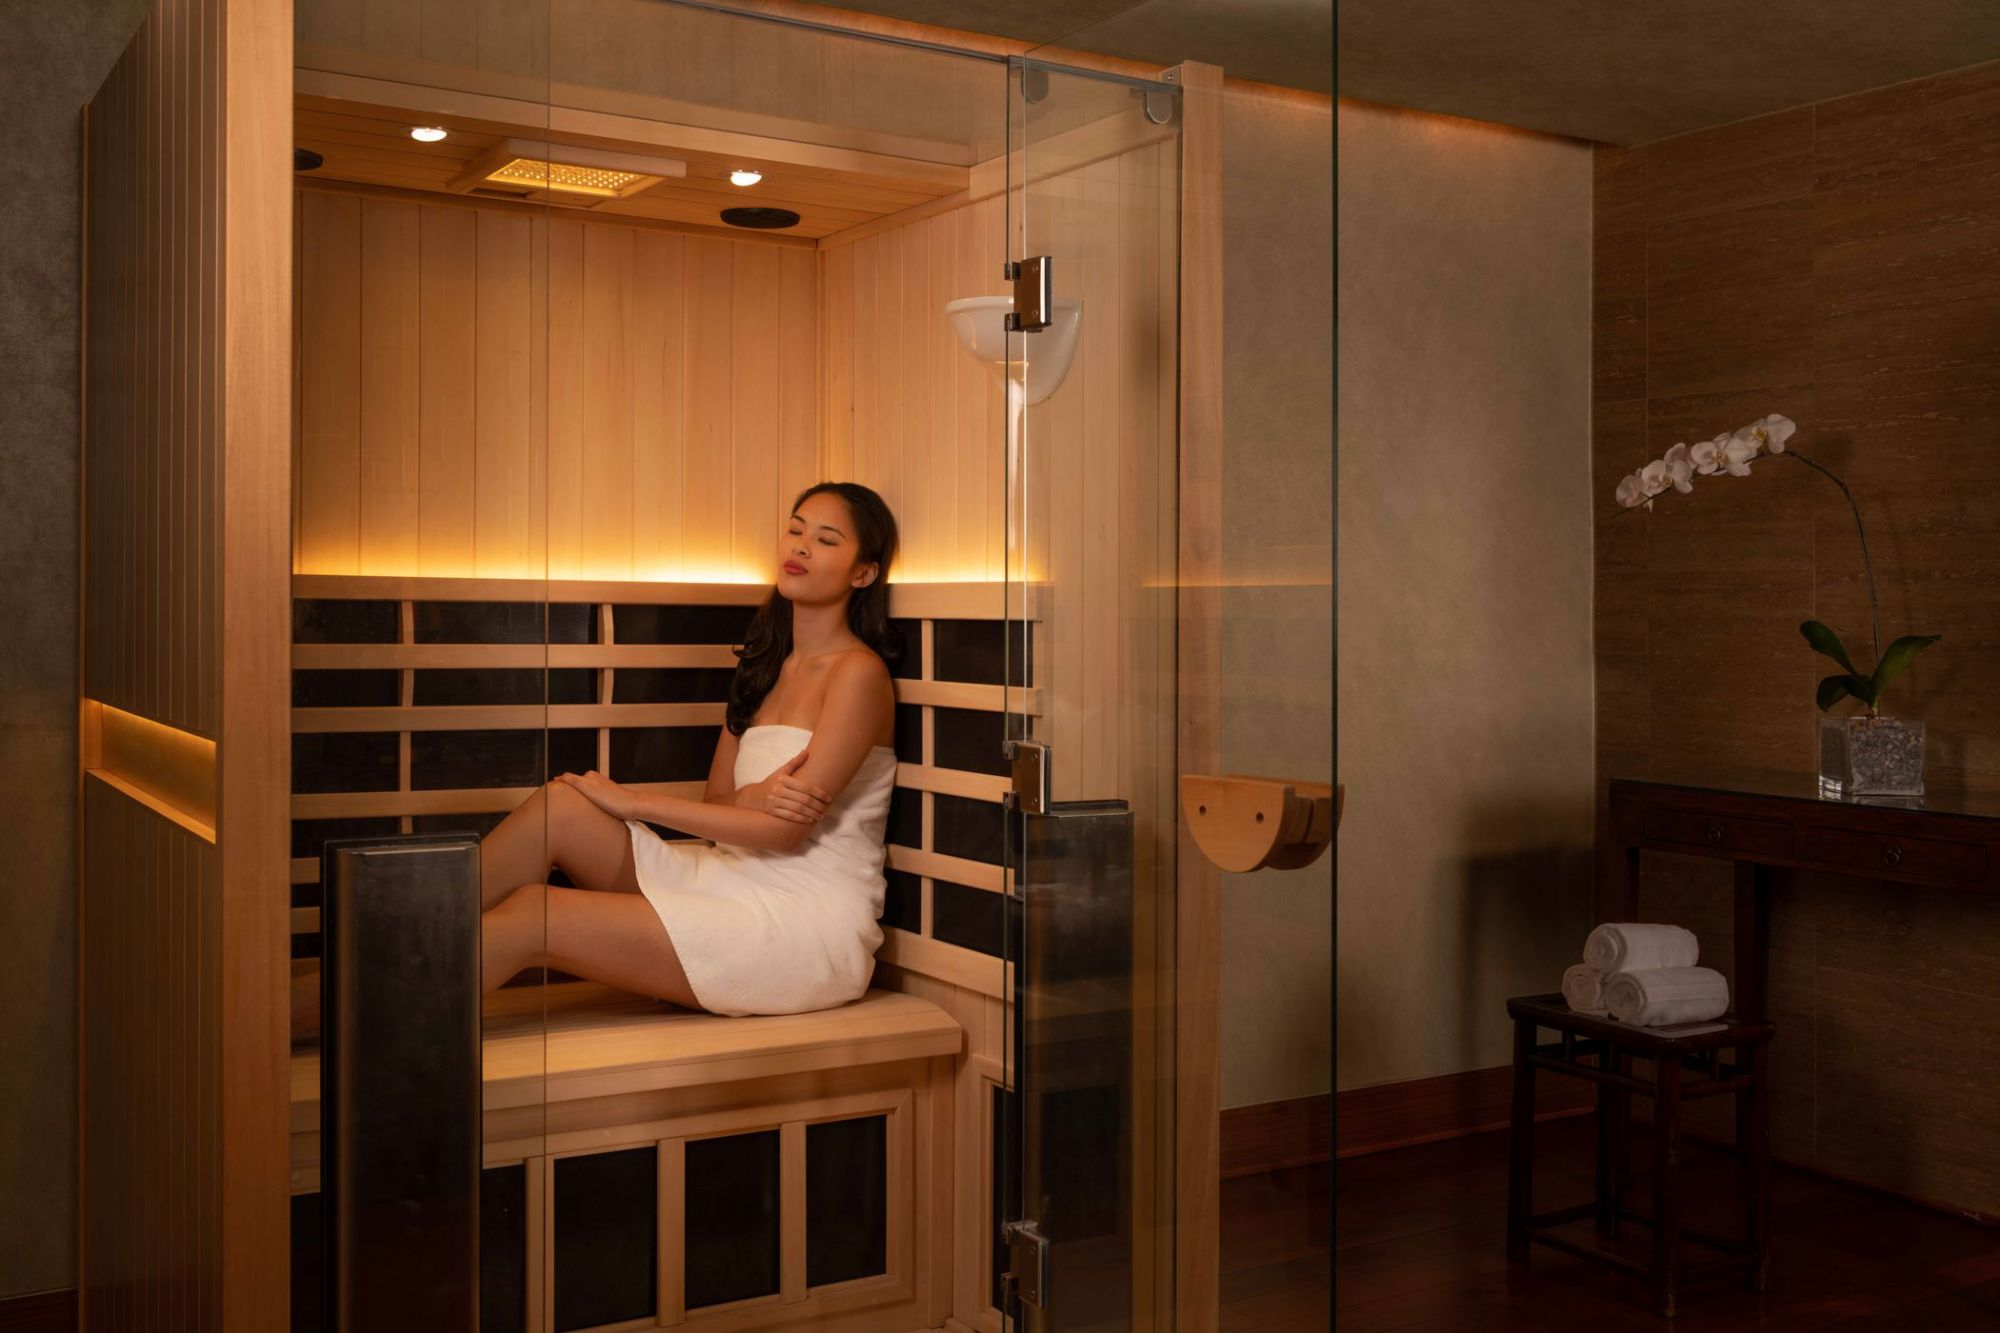 Tatler Tests: The World's First Halotherapy Sauna In Hong